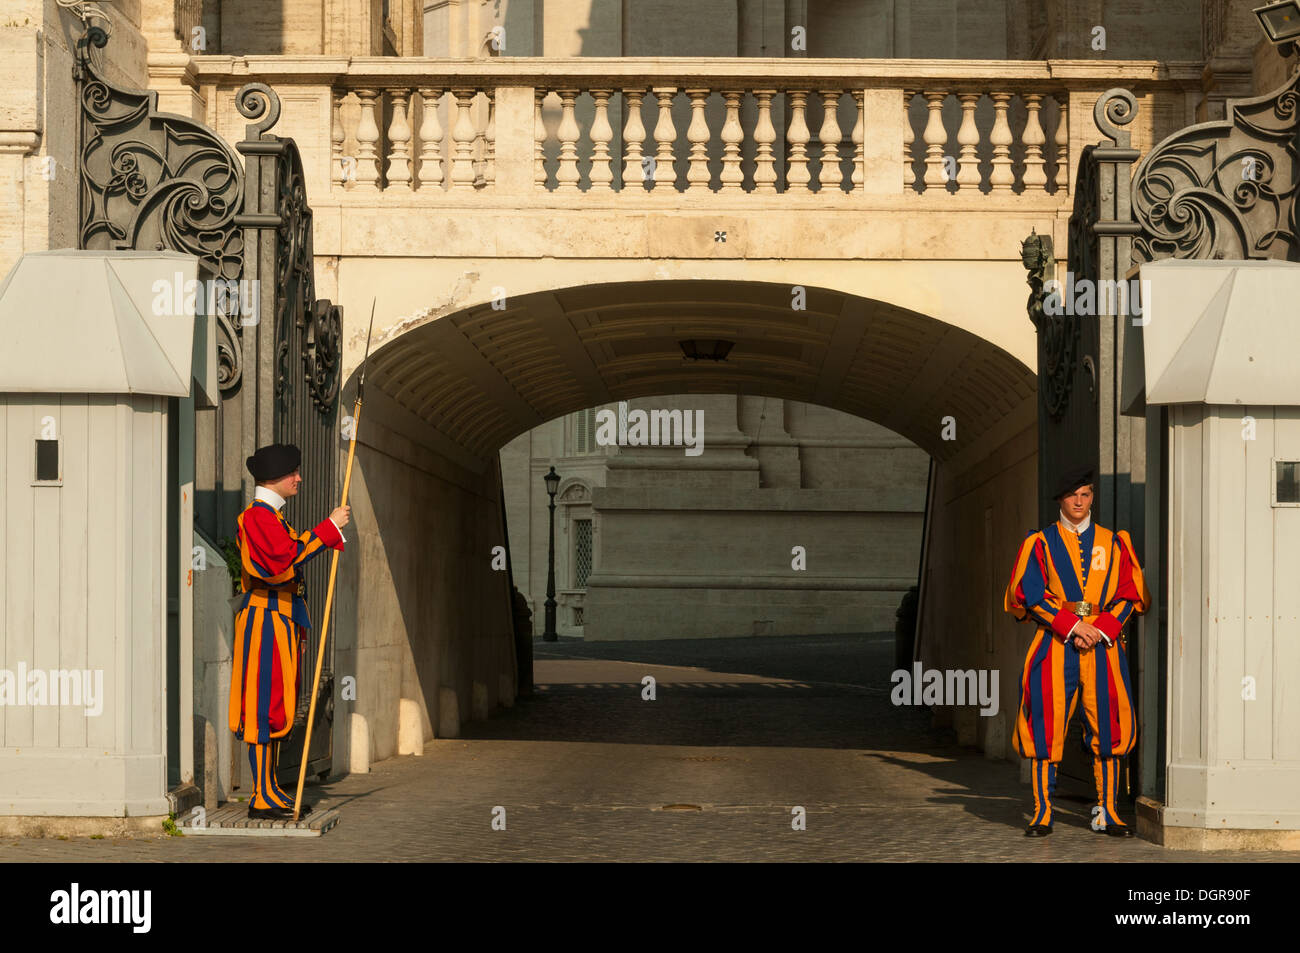 Swiss Guards, St Peter's Basilica, the Vatican, Rome, Italy Stock Photo